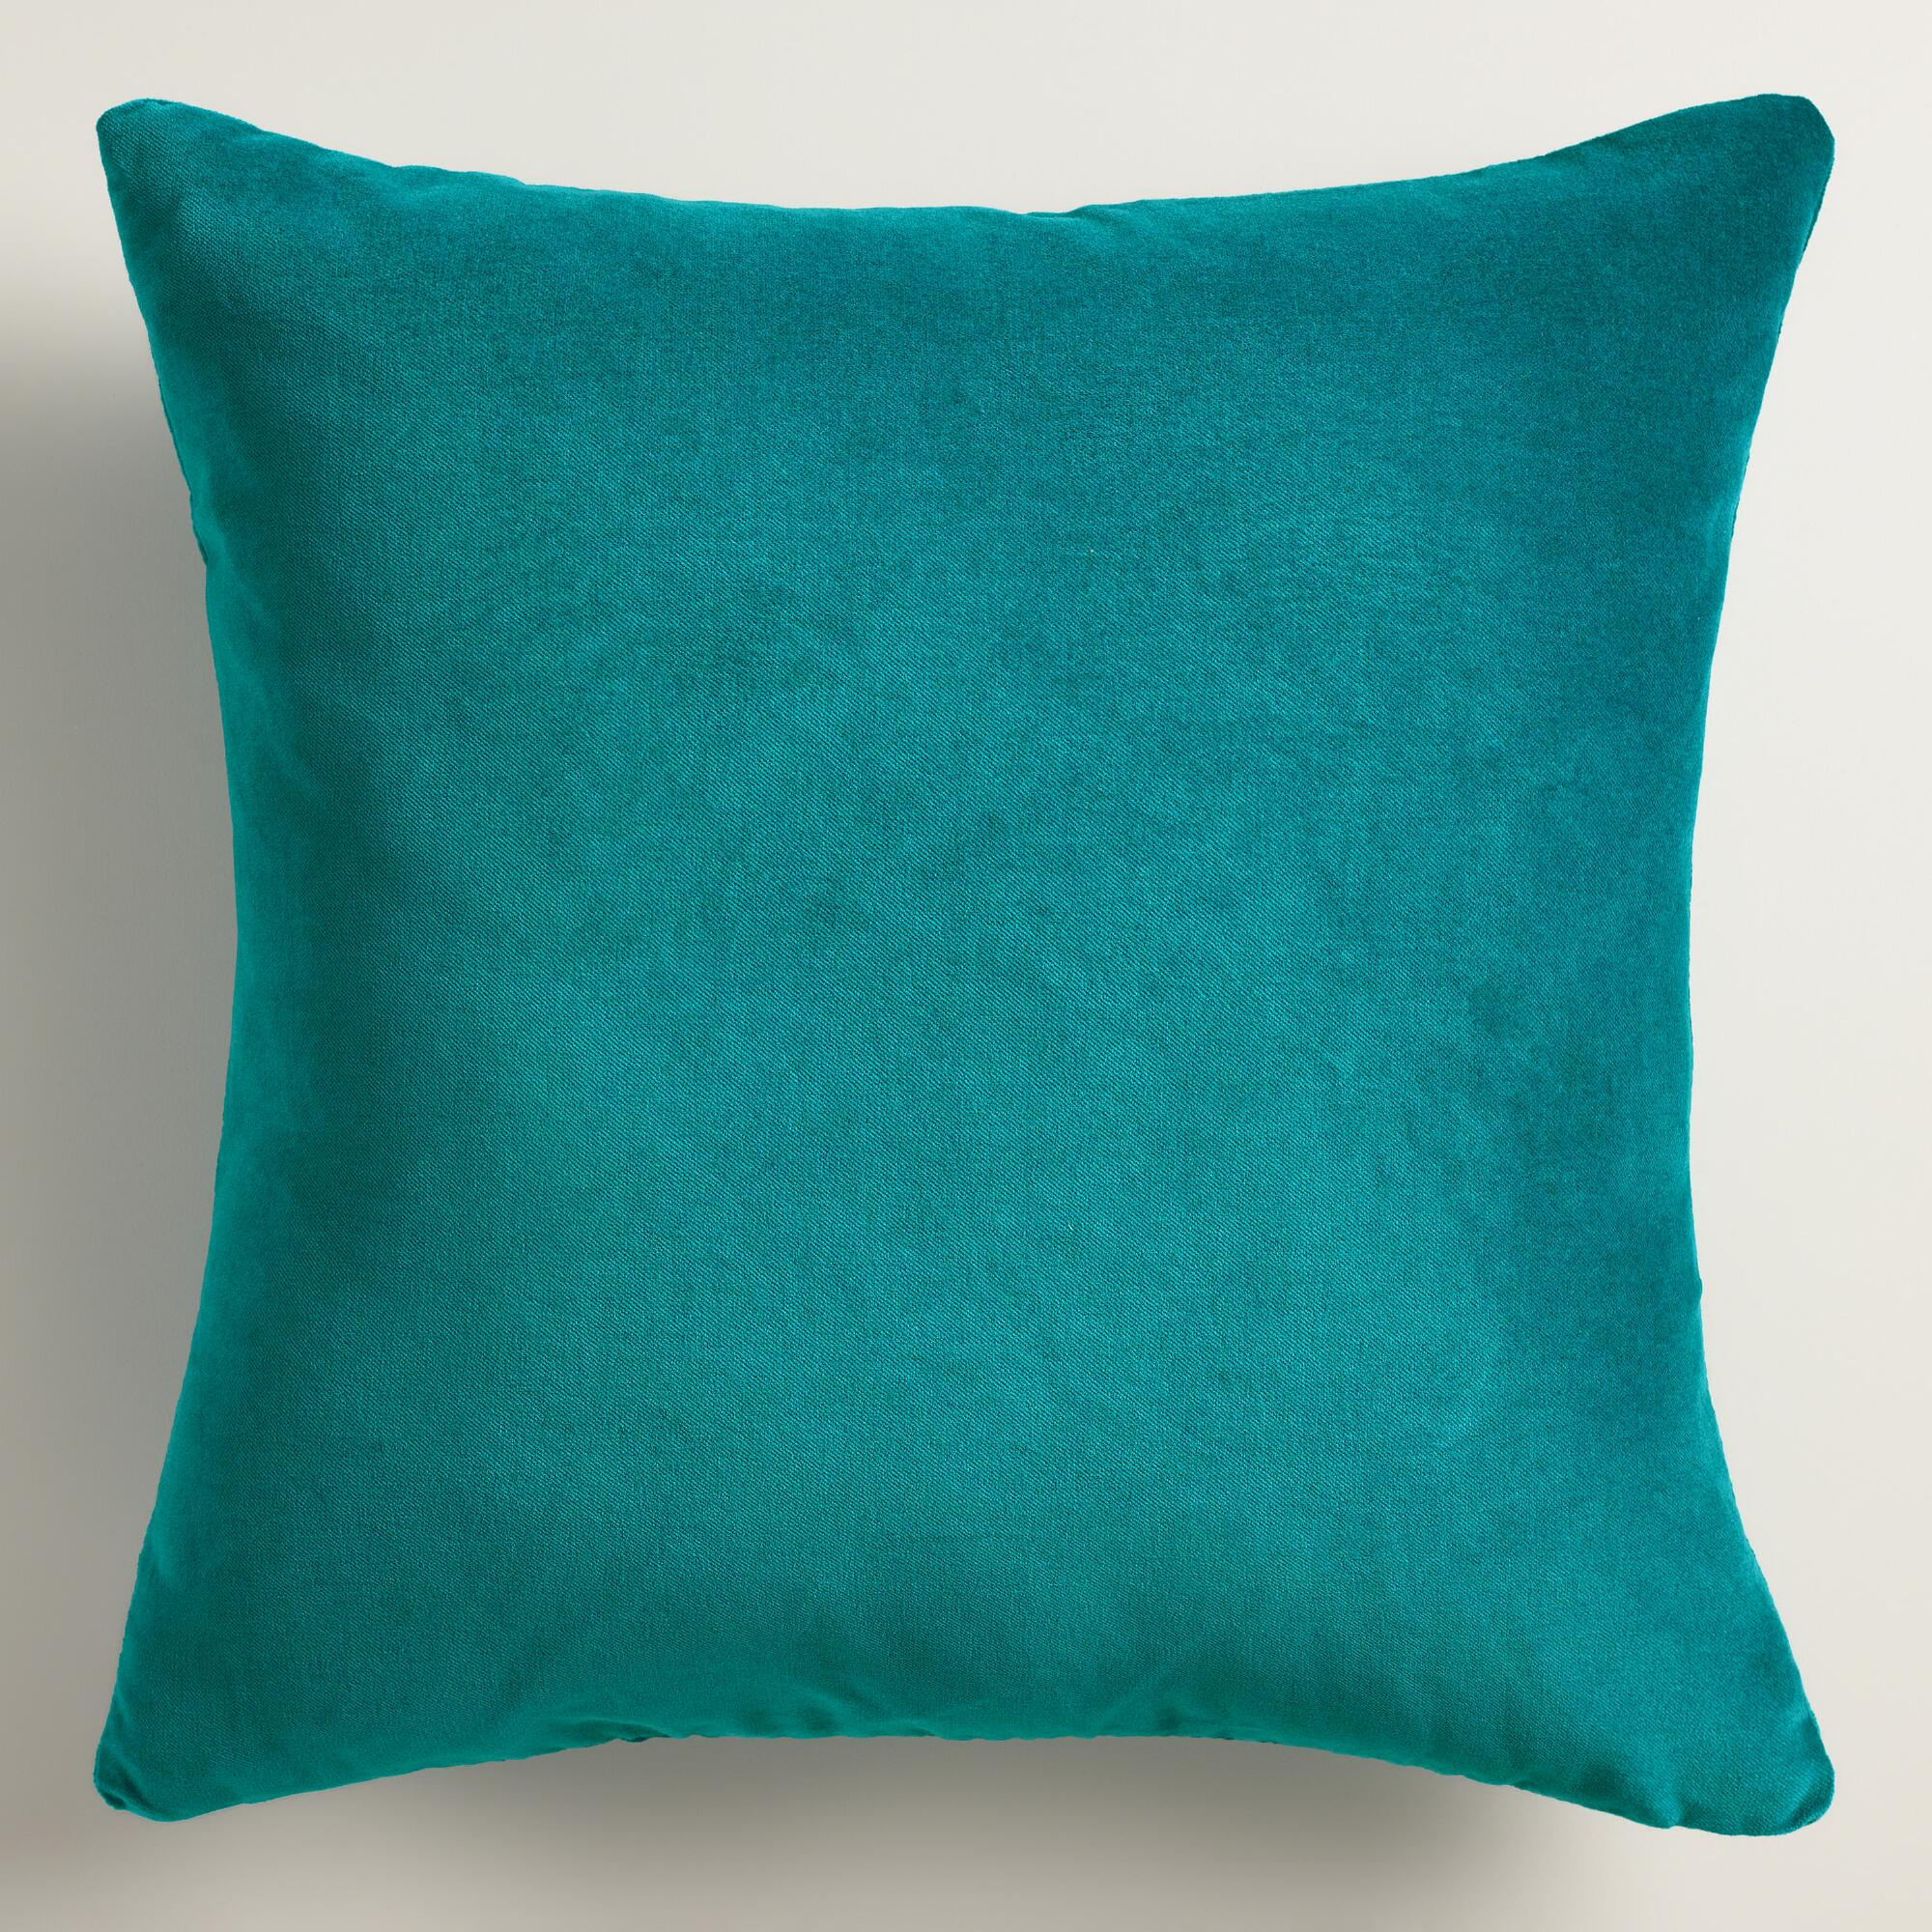 Interior Astonishing Cushions Teal Throw Pillows For Queen Bed  ~ What Size Throw Pillow For Sofa